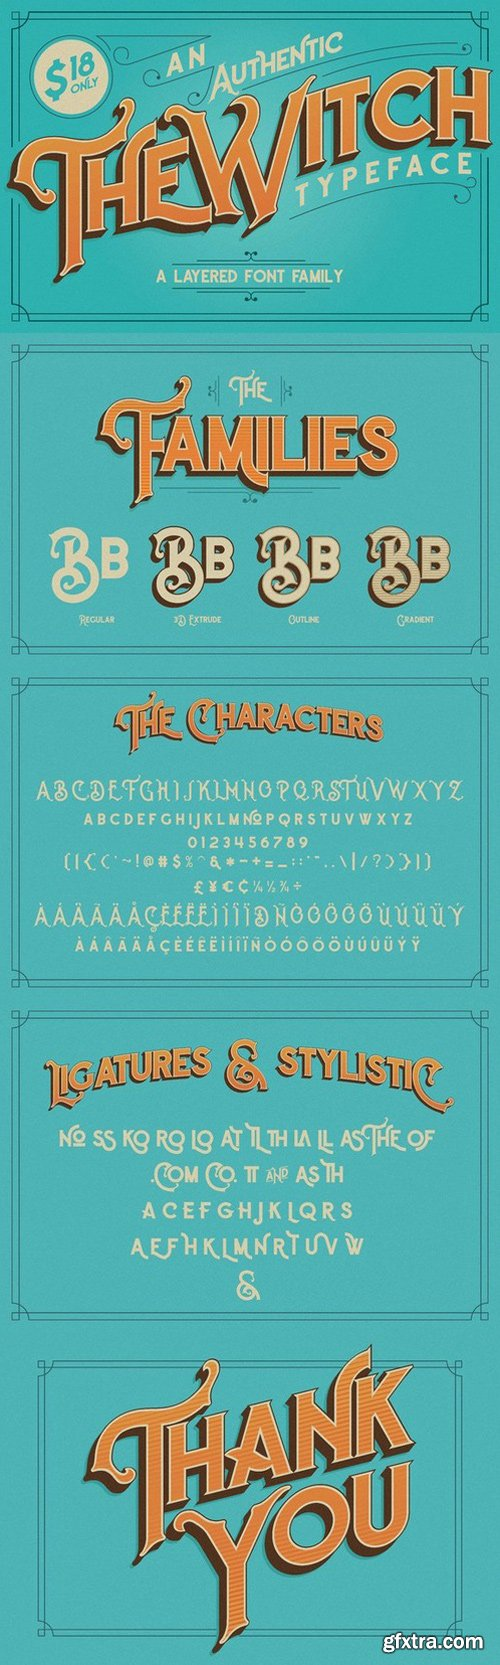 CM - The Witch Typeface 701769